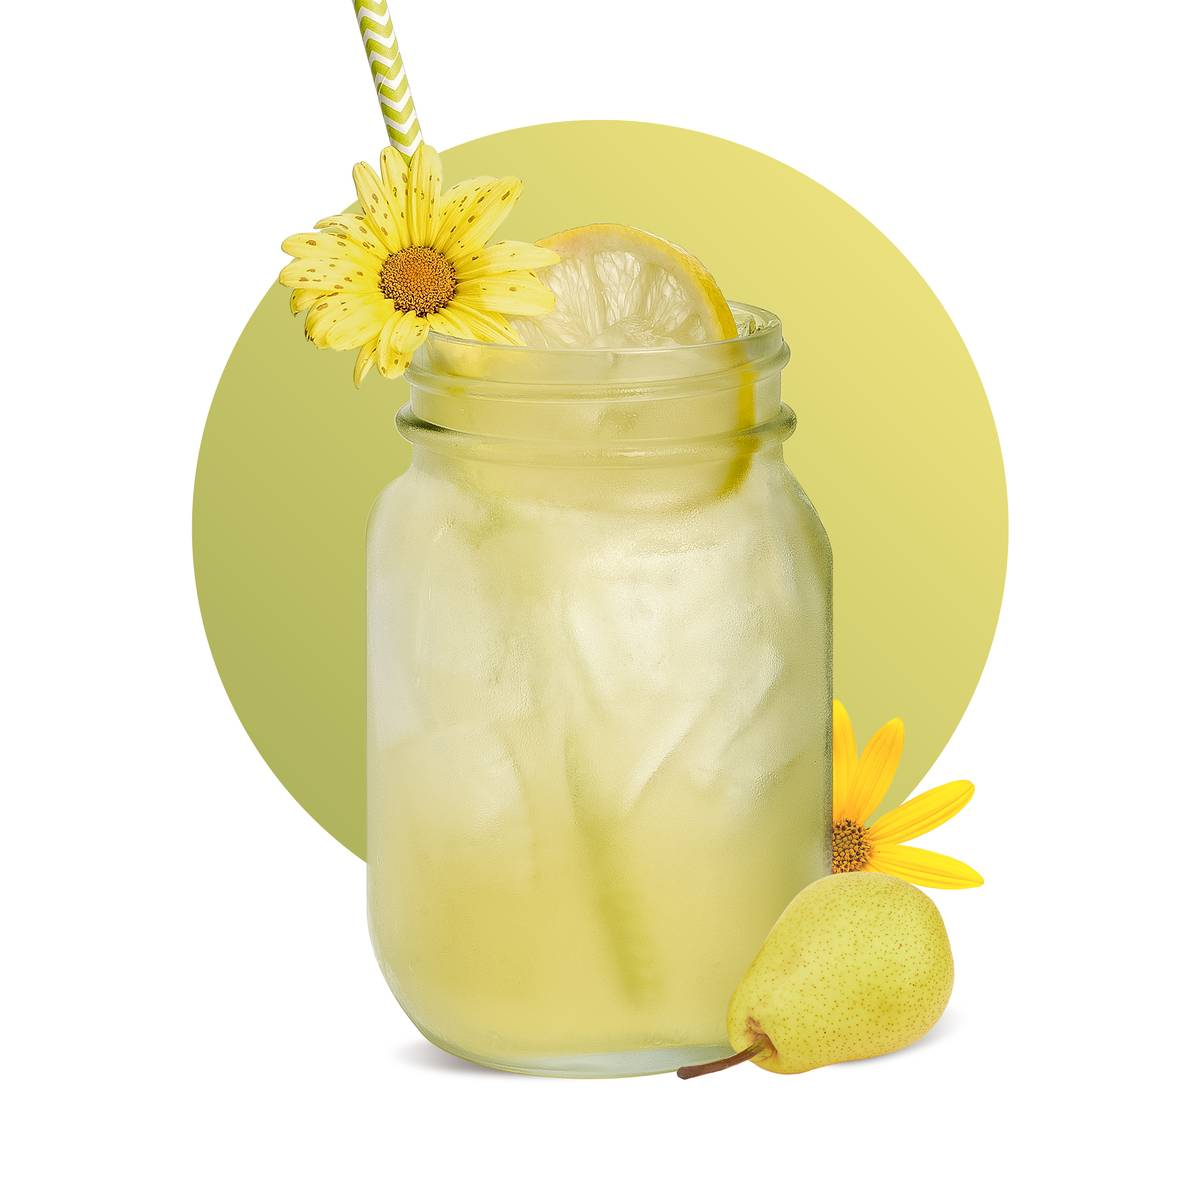 Pear Elderflower Lemonade Recipe